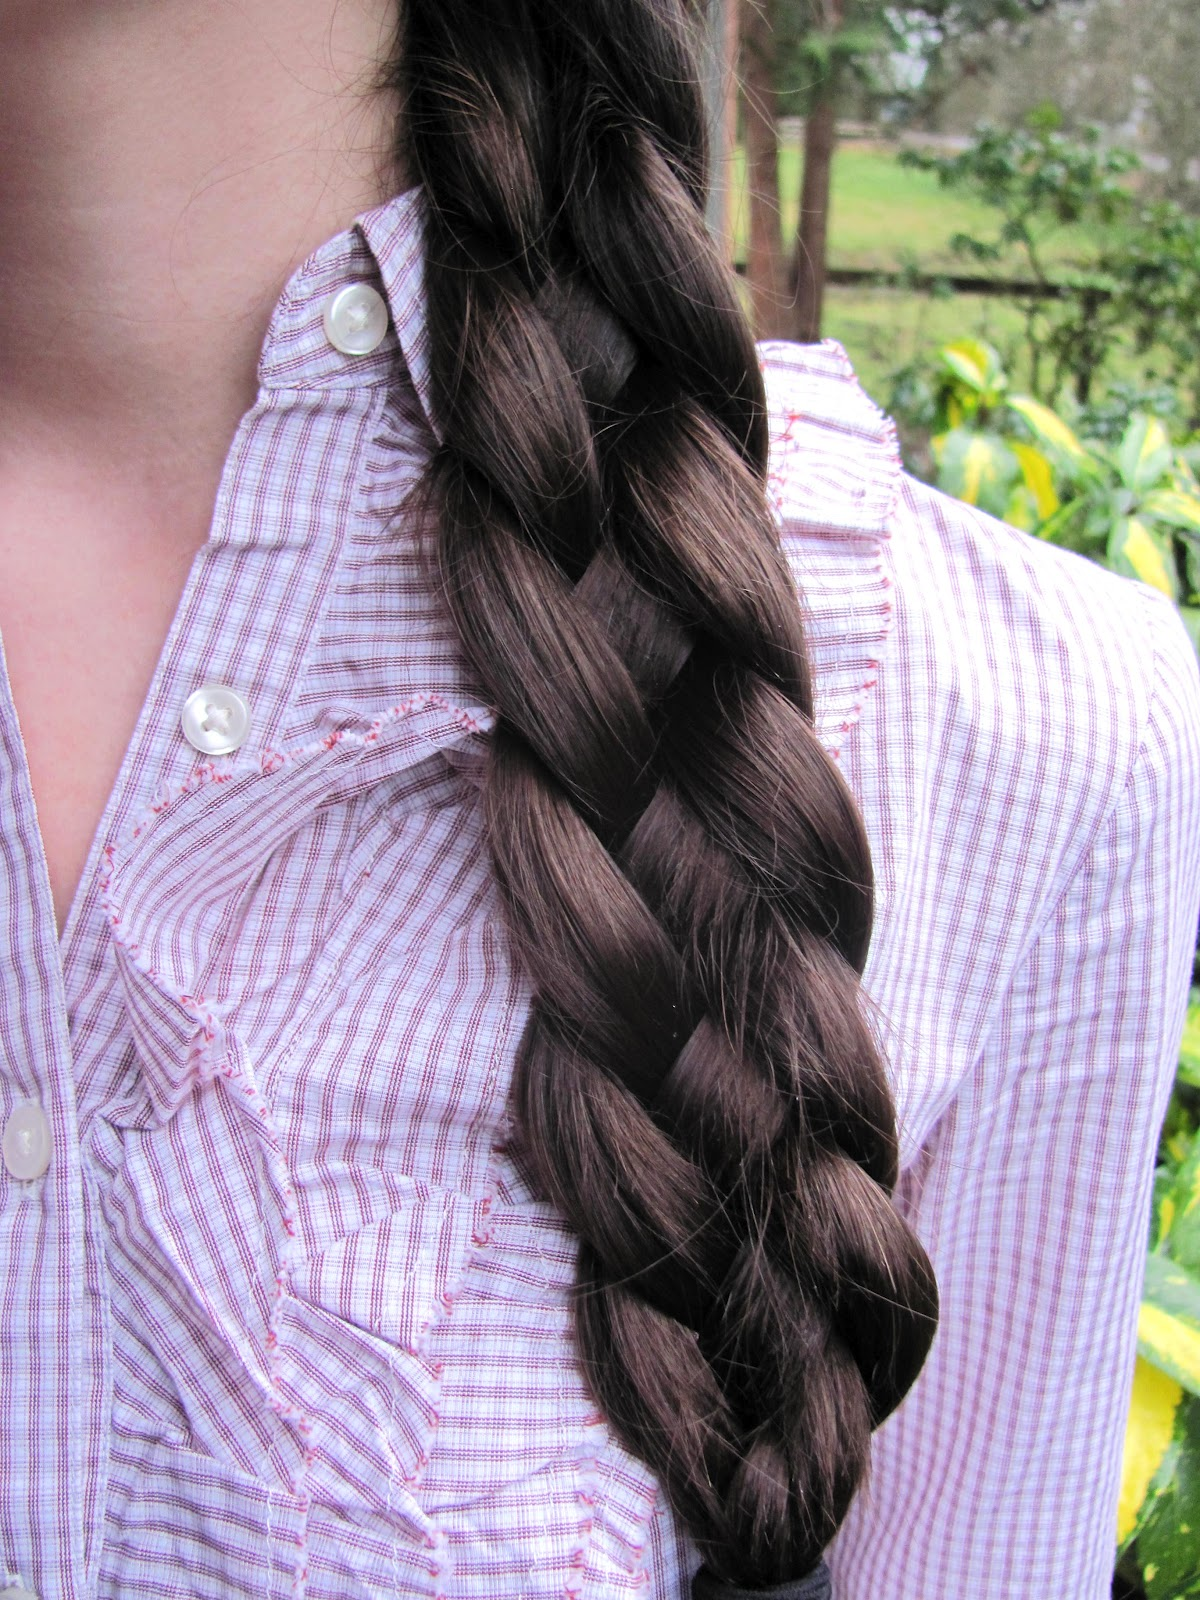 Vivi K: Hair: The four strand braid